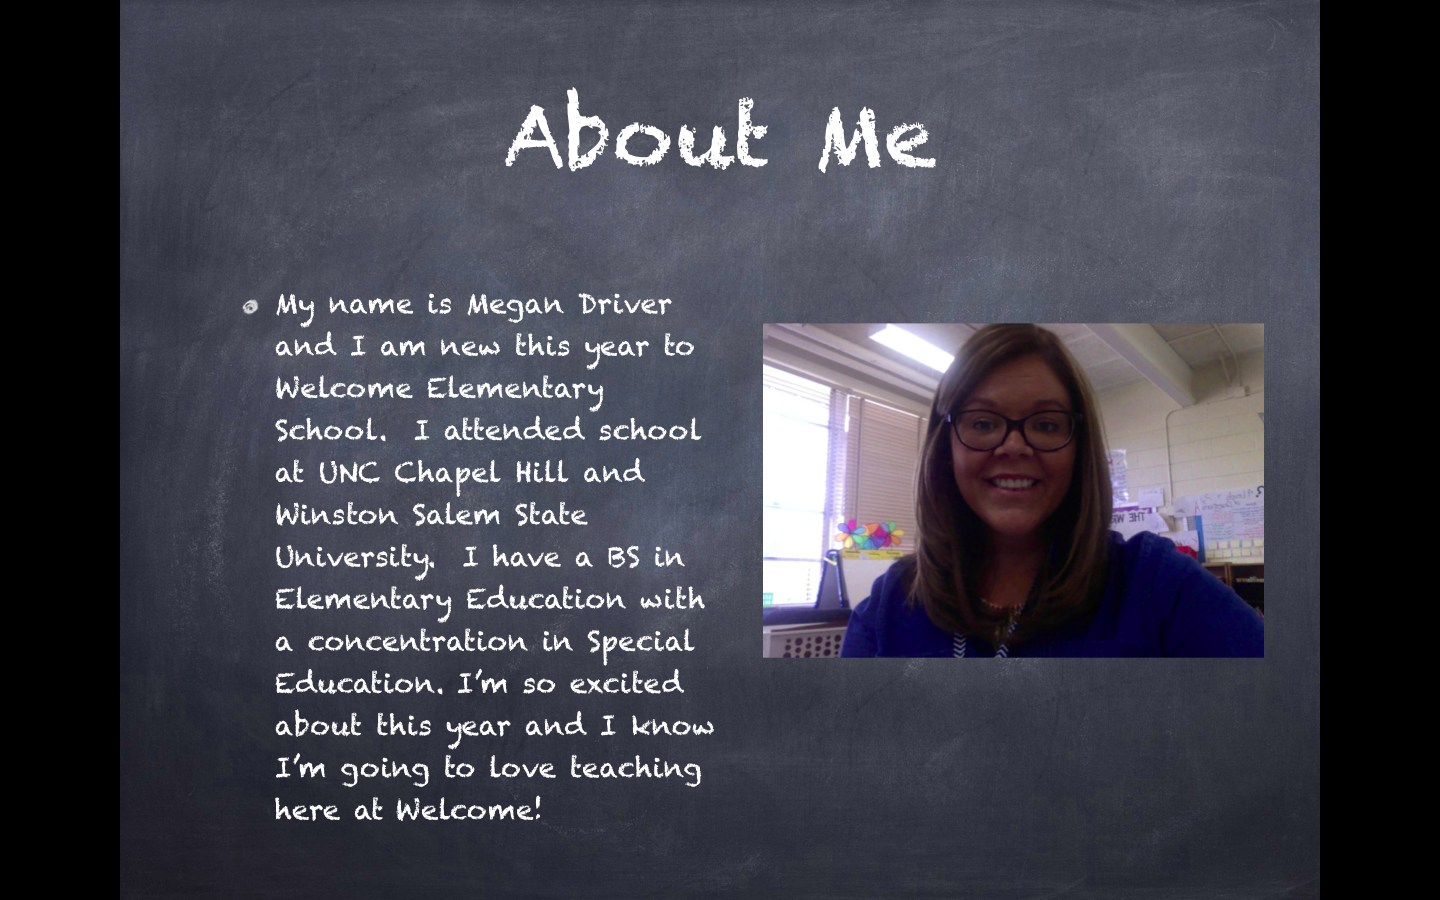 About Me: My name is Megan Driver and I am new this year to Welcome Elementary School.  I attended school at UNC Chapel Hill and Winston Salem State University.  I have a BS in Elementary Education with a concentration in Special Education. I'm so excited about this year and I know I'm going to love teaching here at Welcome!